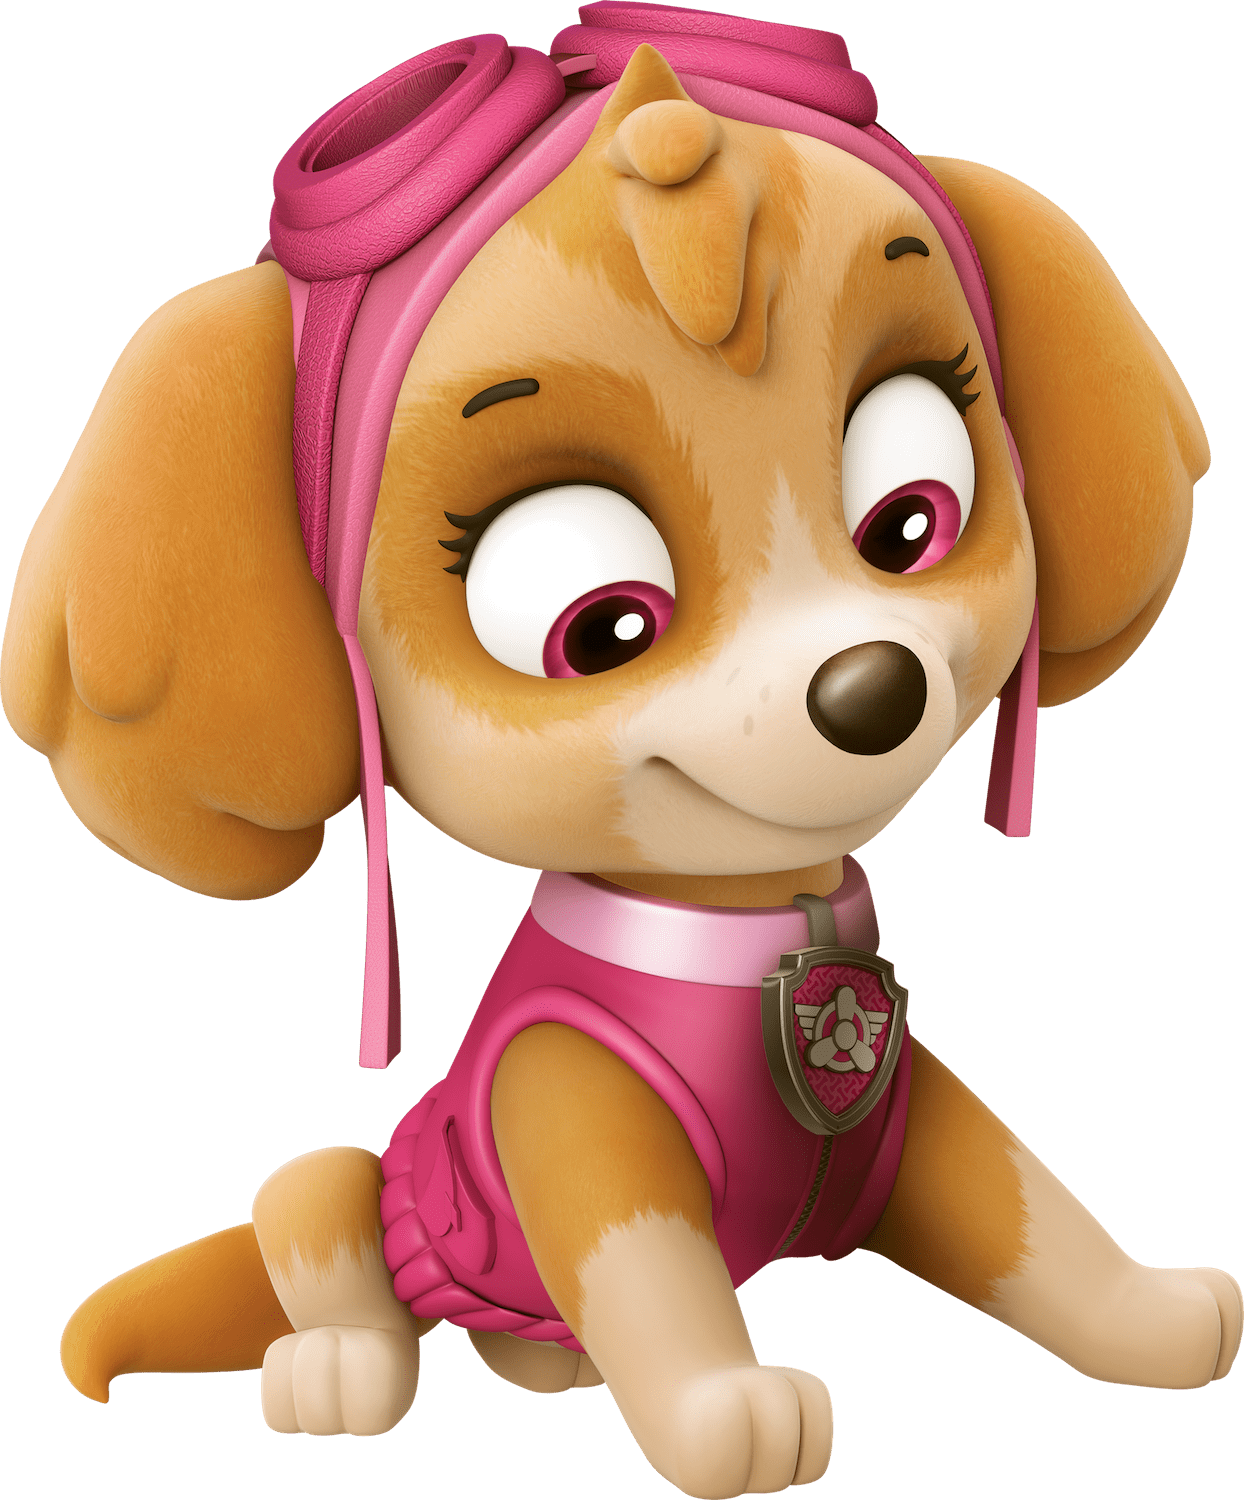 Paw patrol clipart skye clipart transparent download Skye Is Doing Yoga Paw Patrol Clipart Png clipart transparent download